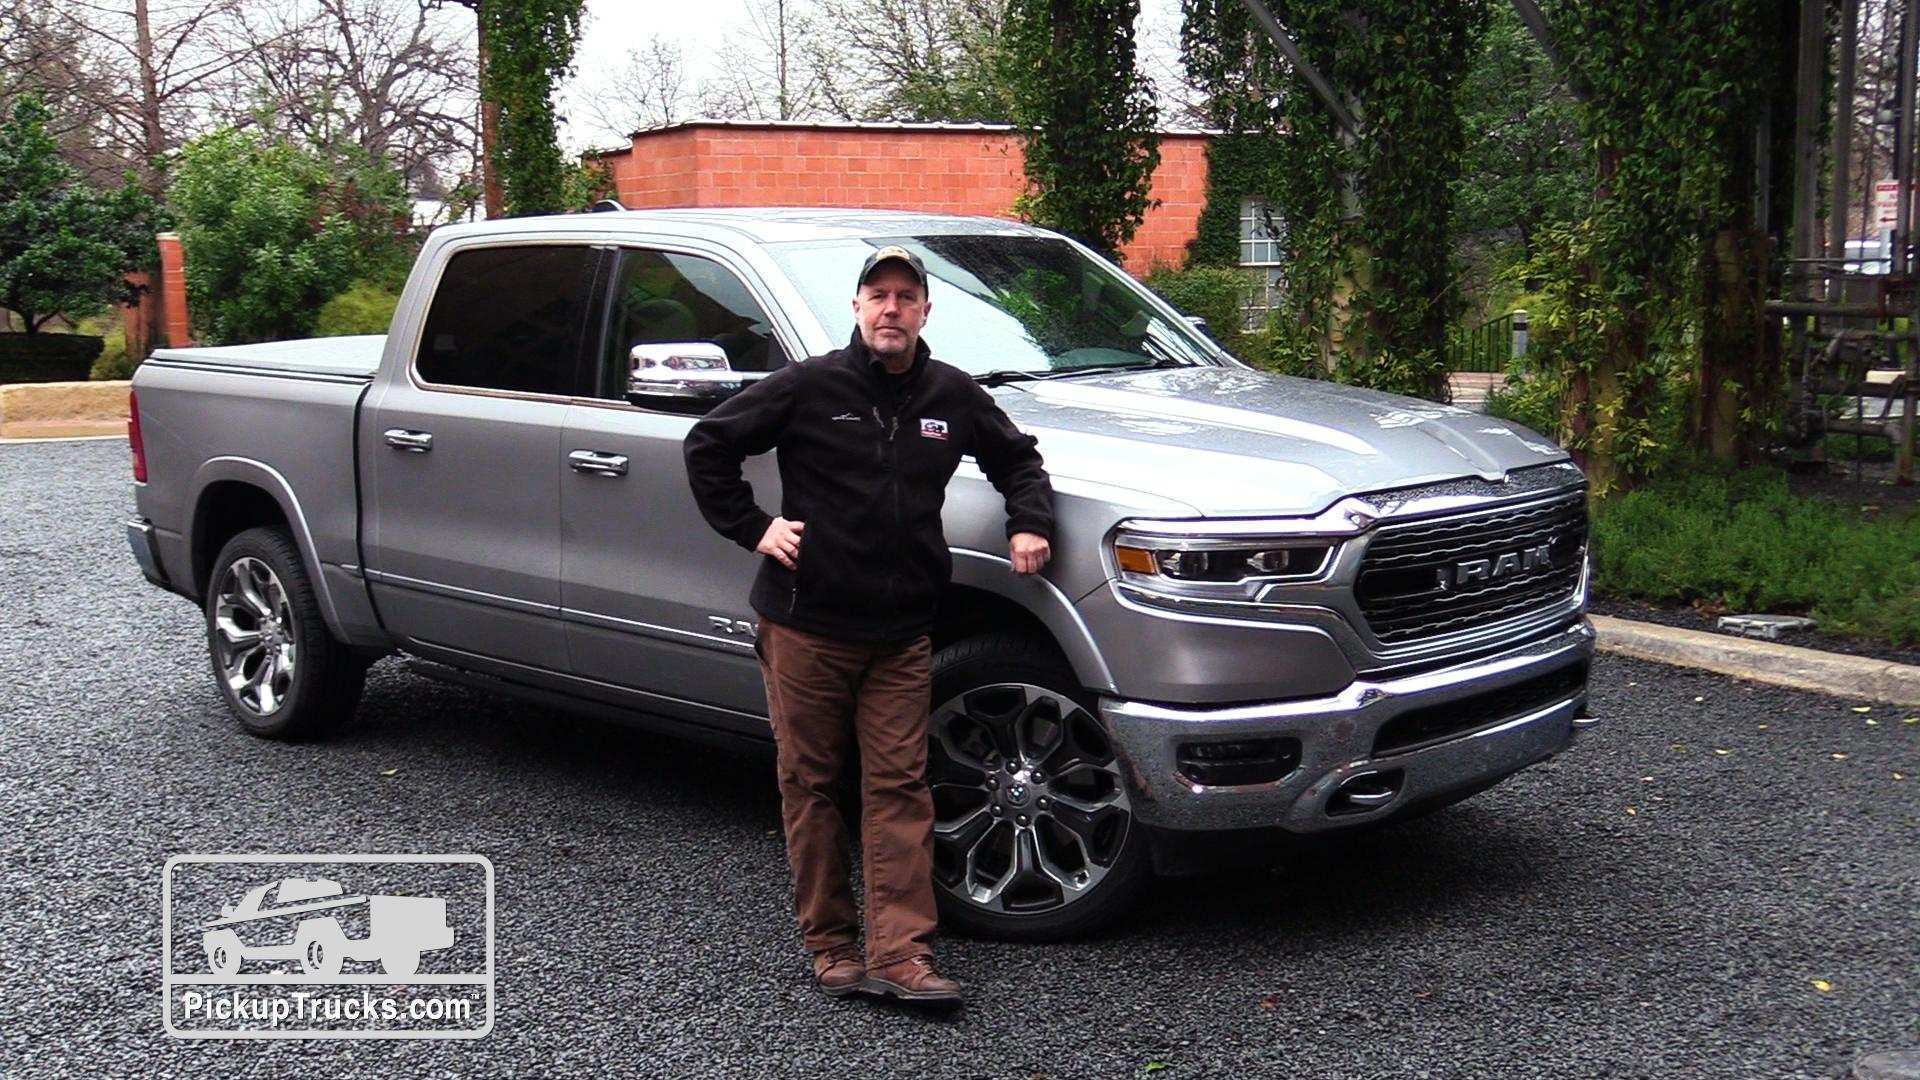 30 All New 2019 Dodge Truck 1500 Reviews by 2019 Dodge Truck 1500